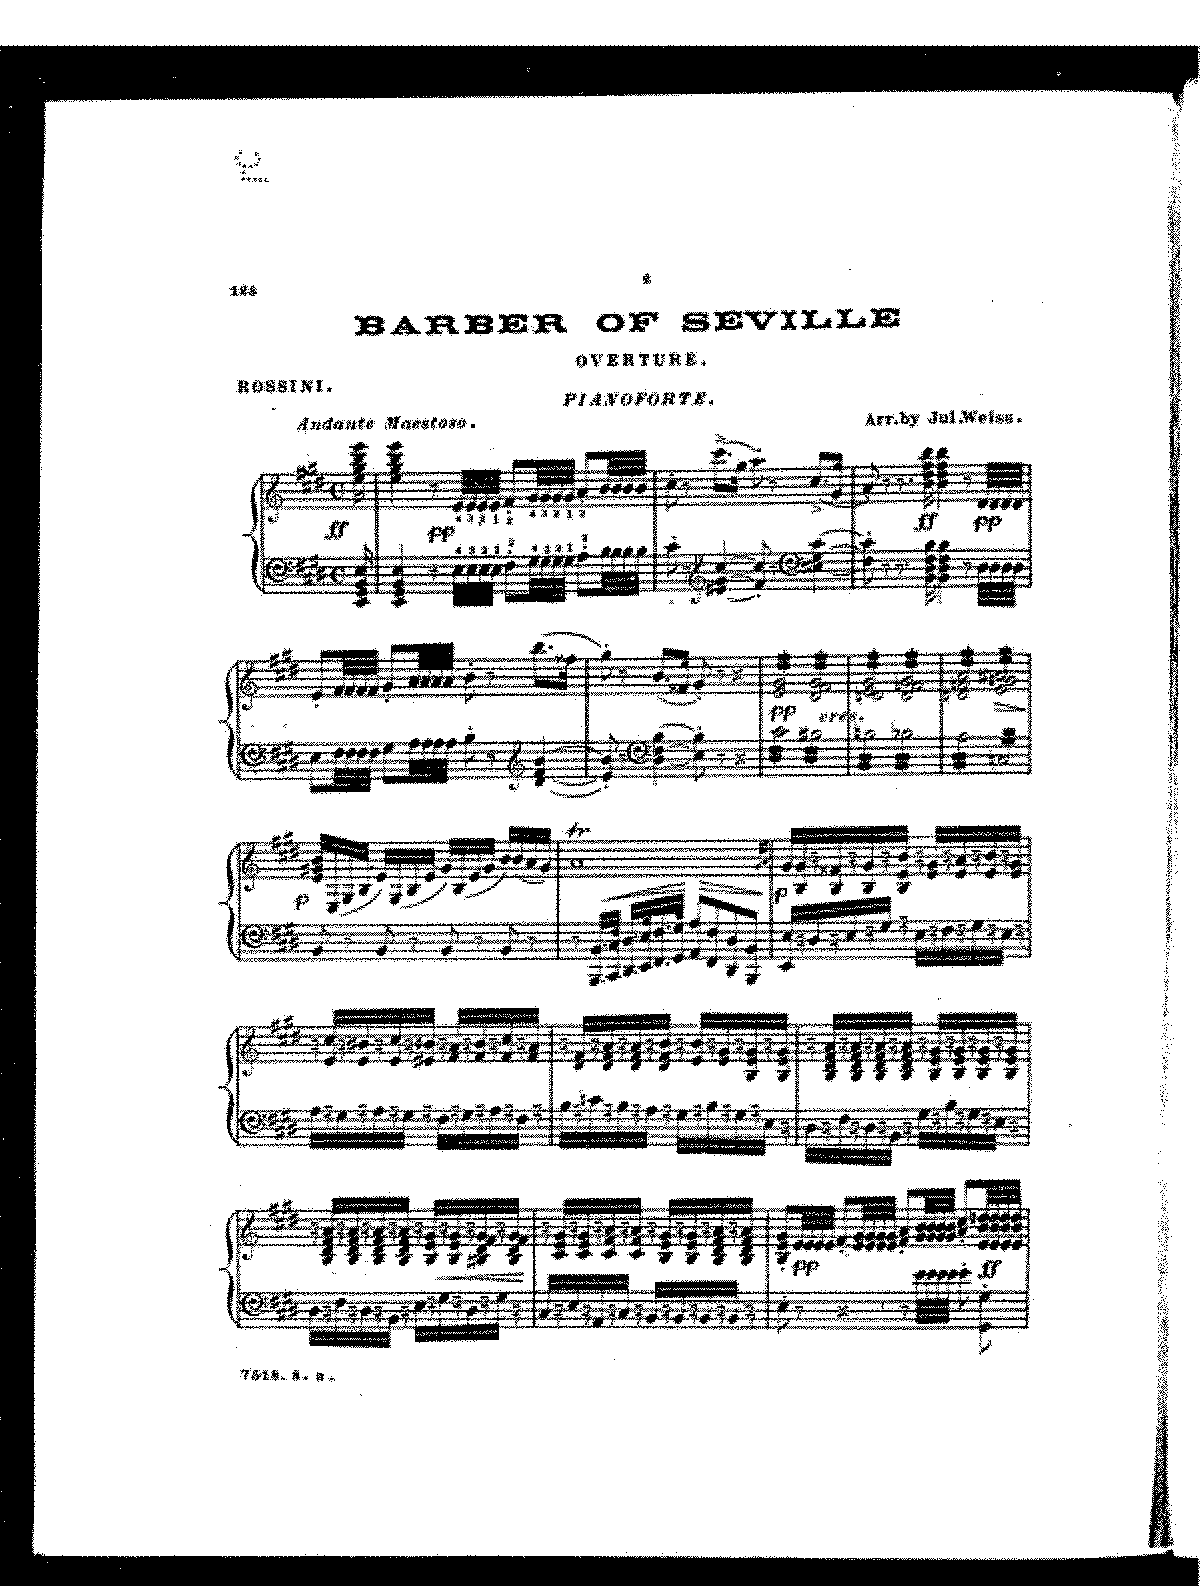 Weiss-Rossini Barber of Seville Overture.pdf